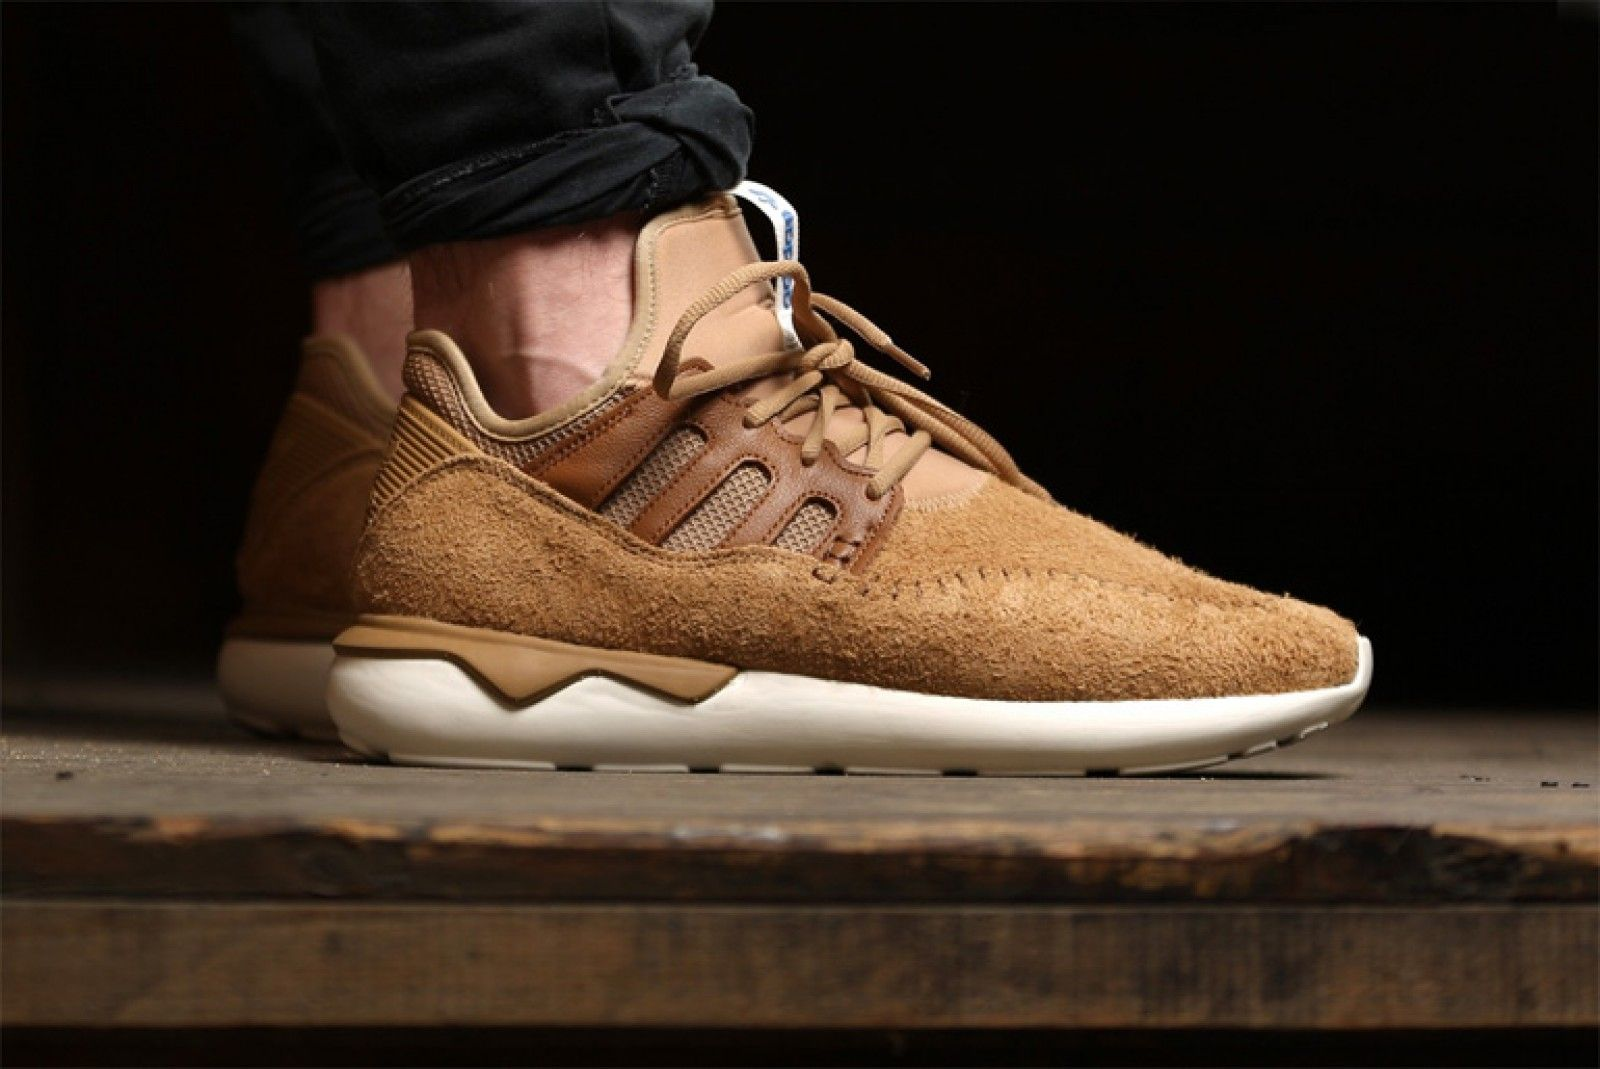 Adidas Tubular Moc Runner Timber - B25786